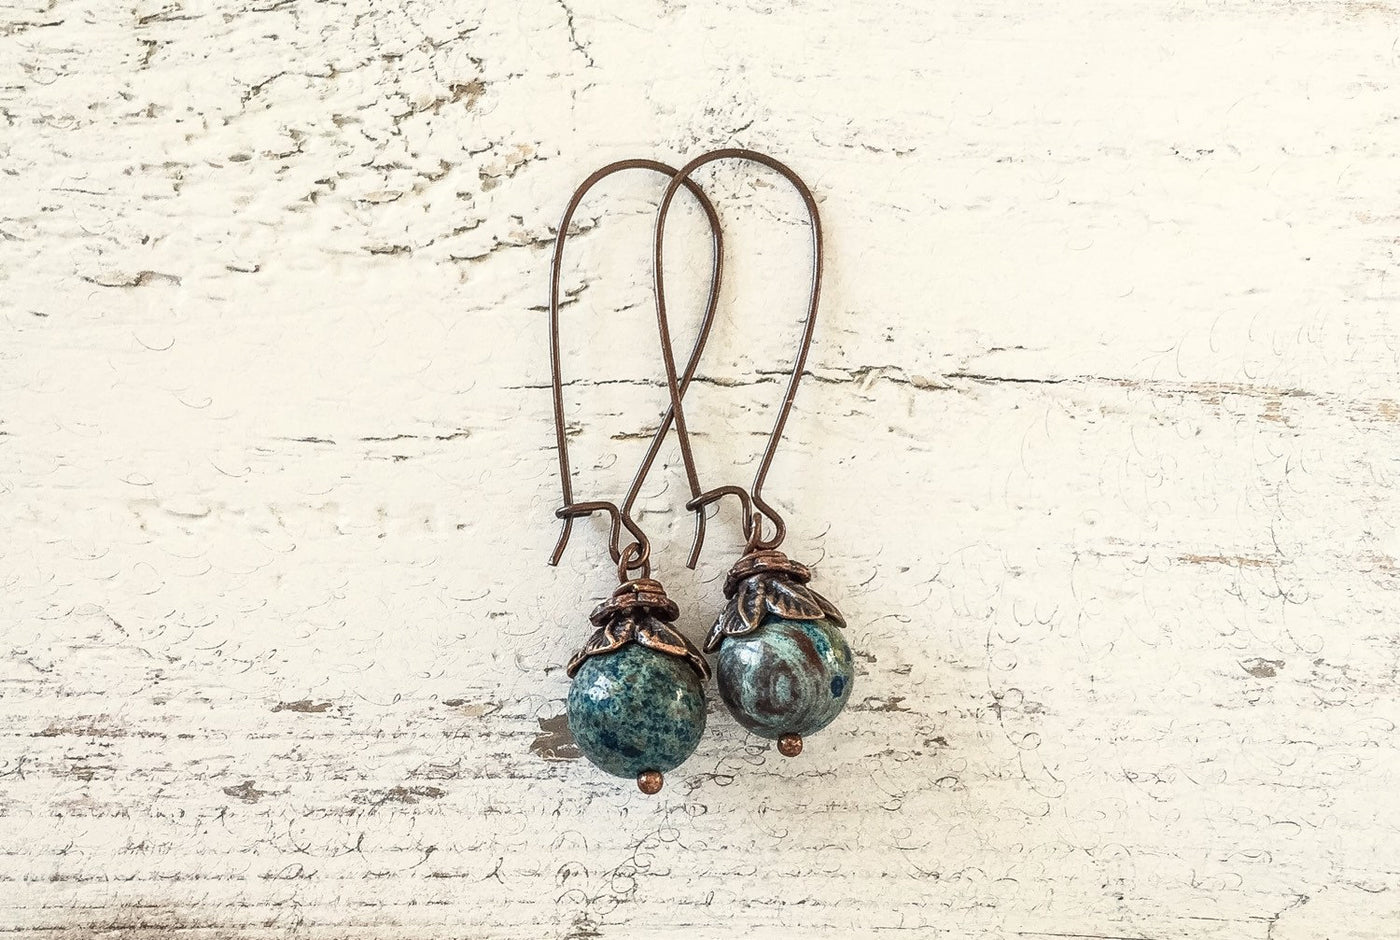 Blue Jasper Earrings, Cute Gemstone Earrings, Dangle Earrings, Boho Simple Earrings, Blue Stone Earrings, Jasper Earrings, E125.6